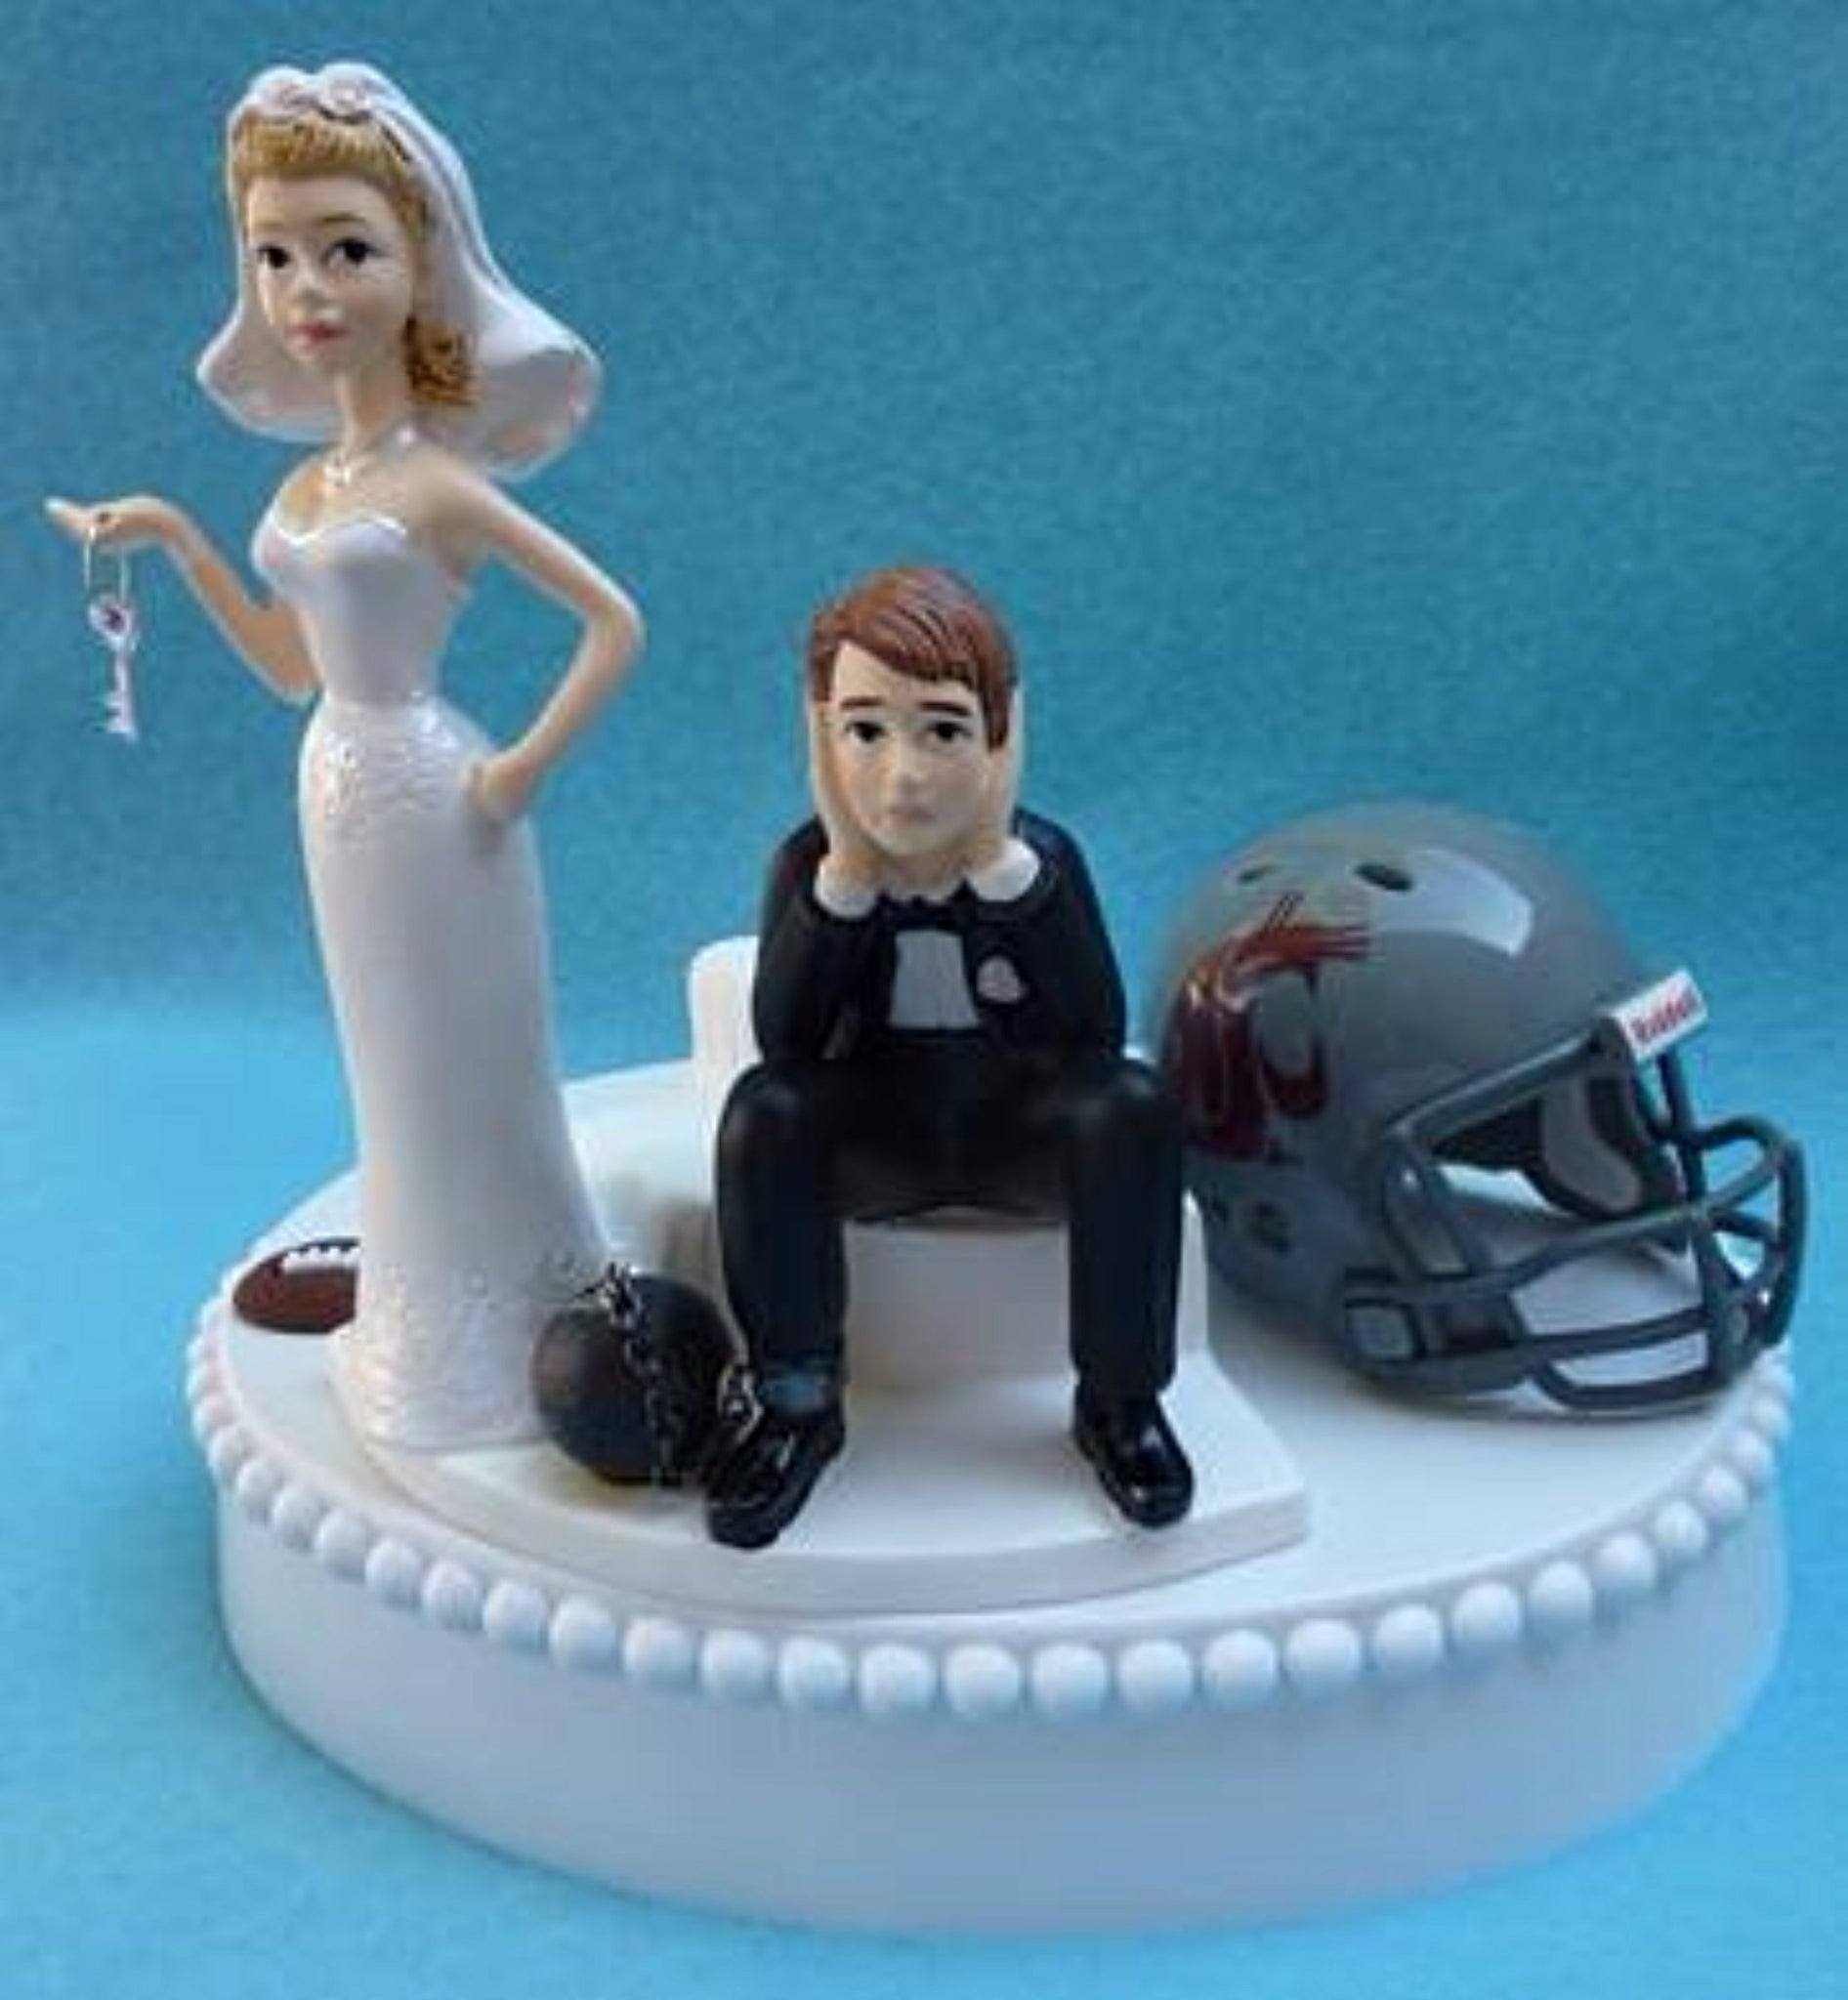 Washington St. University wedding cake topper WSU Cougars football funny bride sad groom ball chain key humorous Fun Wedding Things